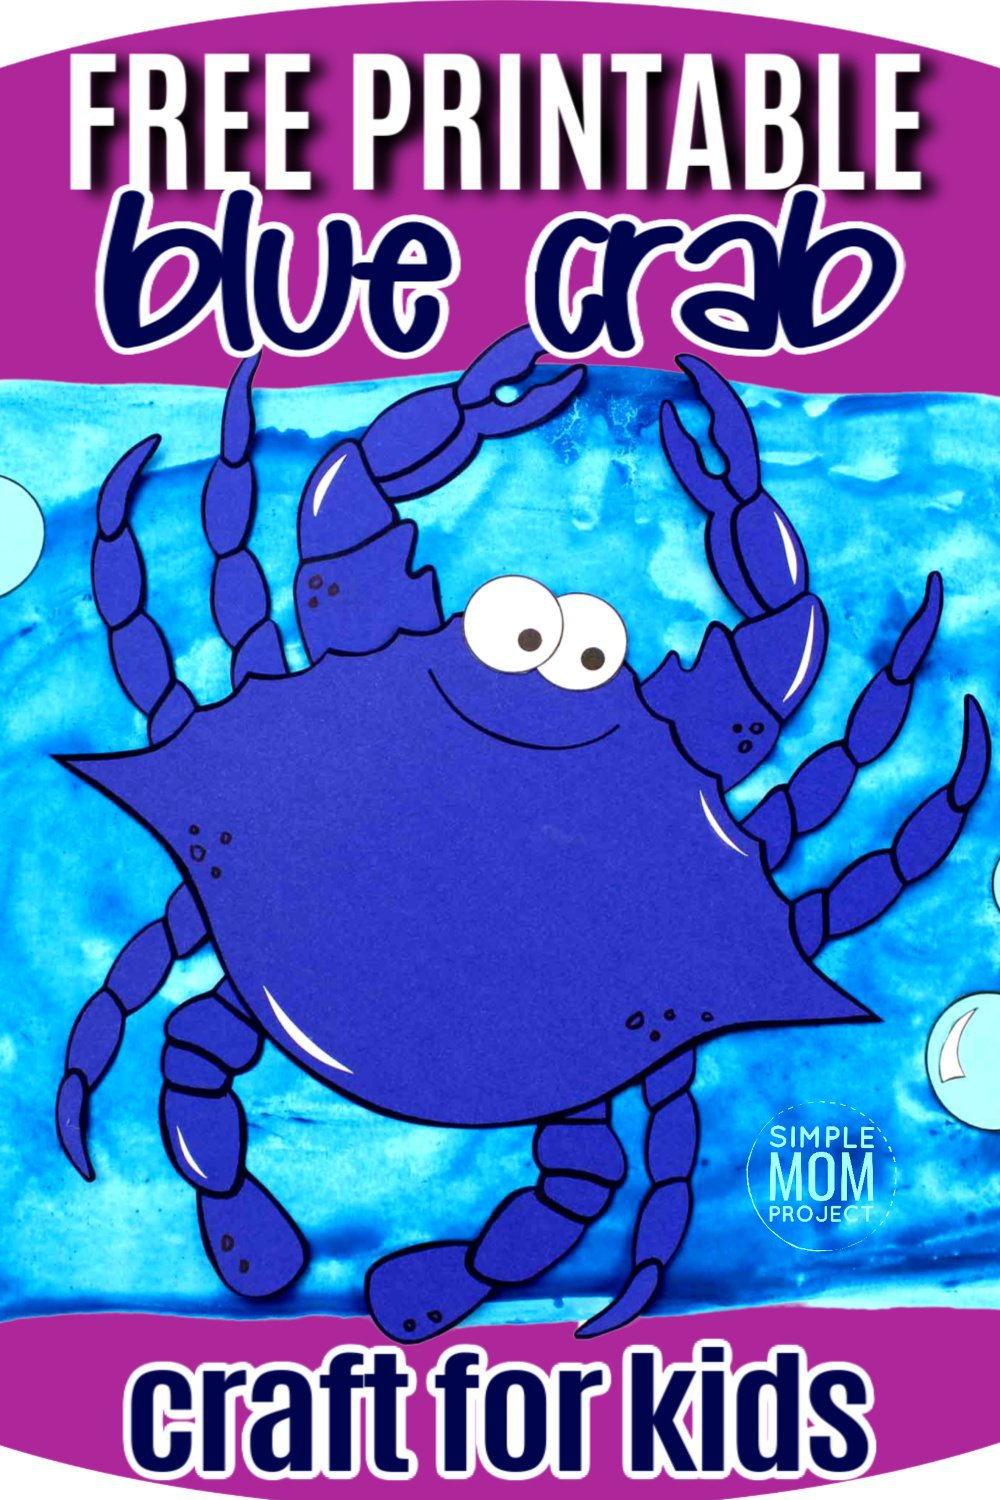 Free Printable Blue Crab Ocean Animal Craft for Kids, preschoolers and toddlers